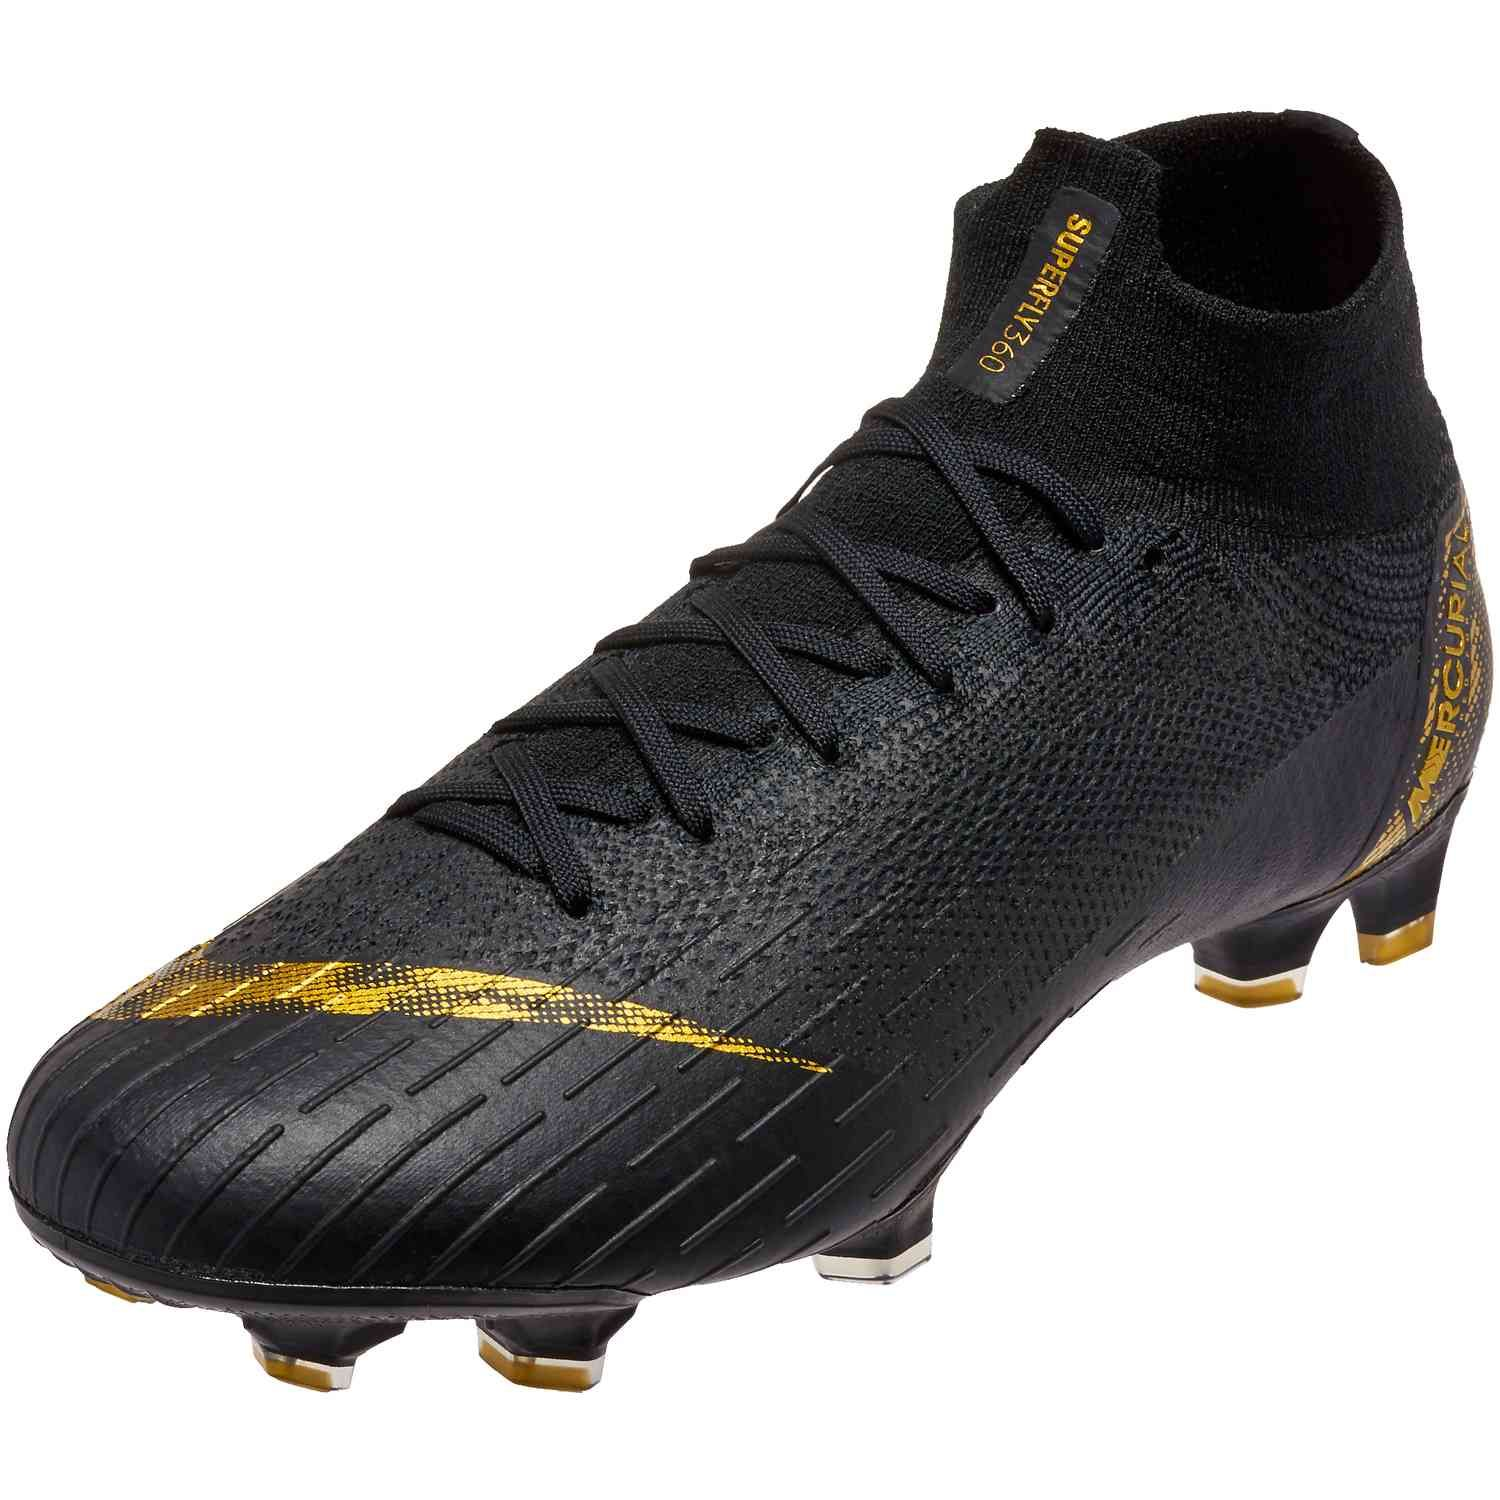 17ee8dc6 Nike Mercurial Superfly 6 Elite FG – Black Lux | Nike Mercurial ...